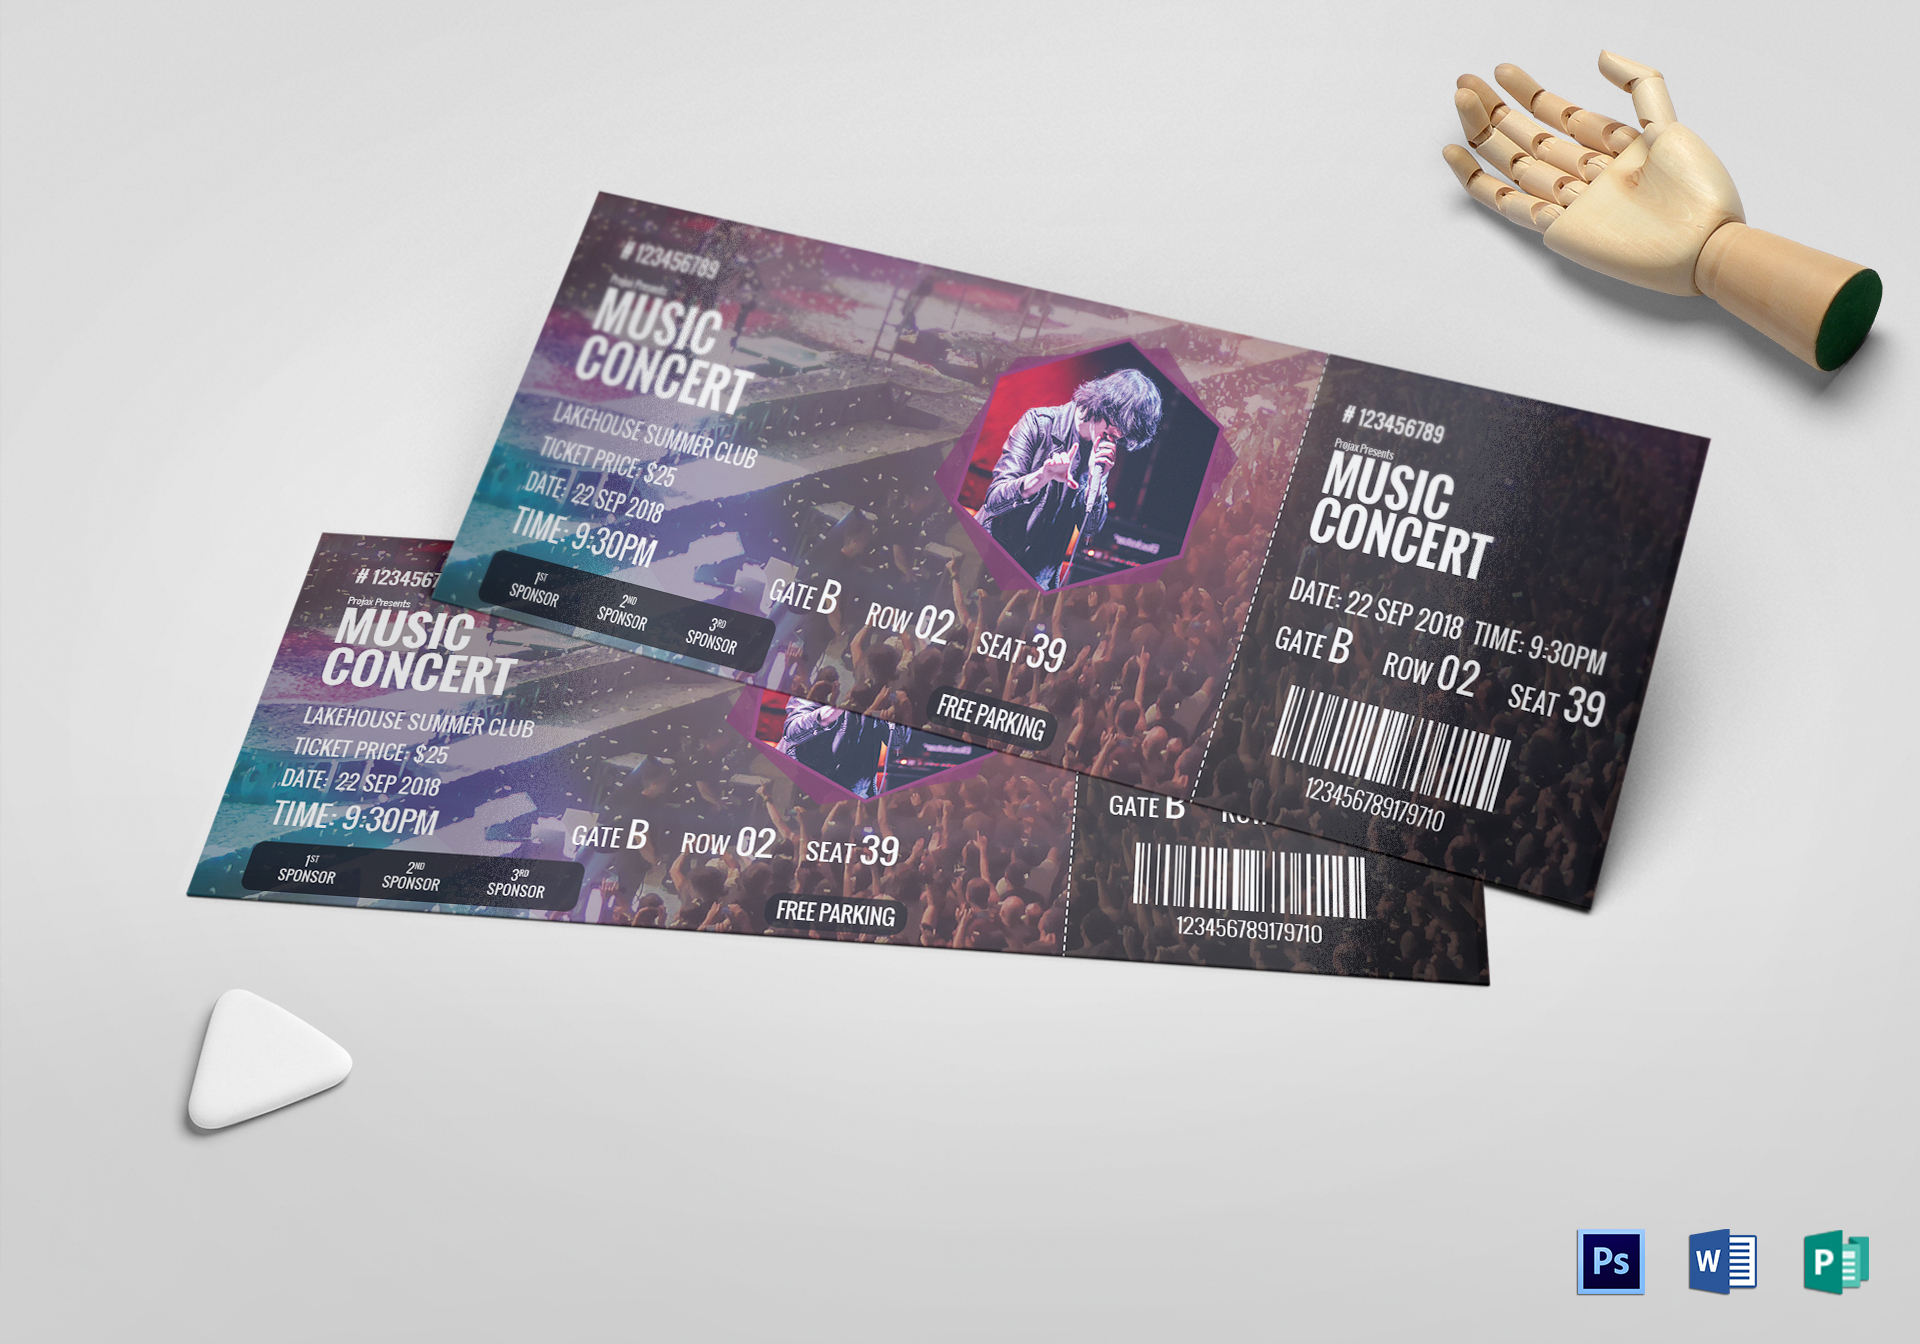 Music Concert Ticket Design Template In PSD Word Publisher Pages